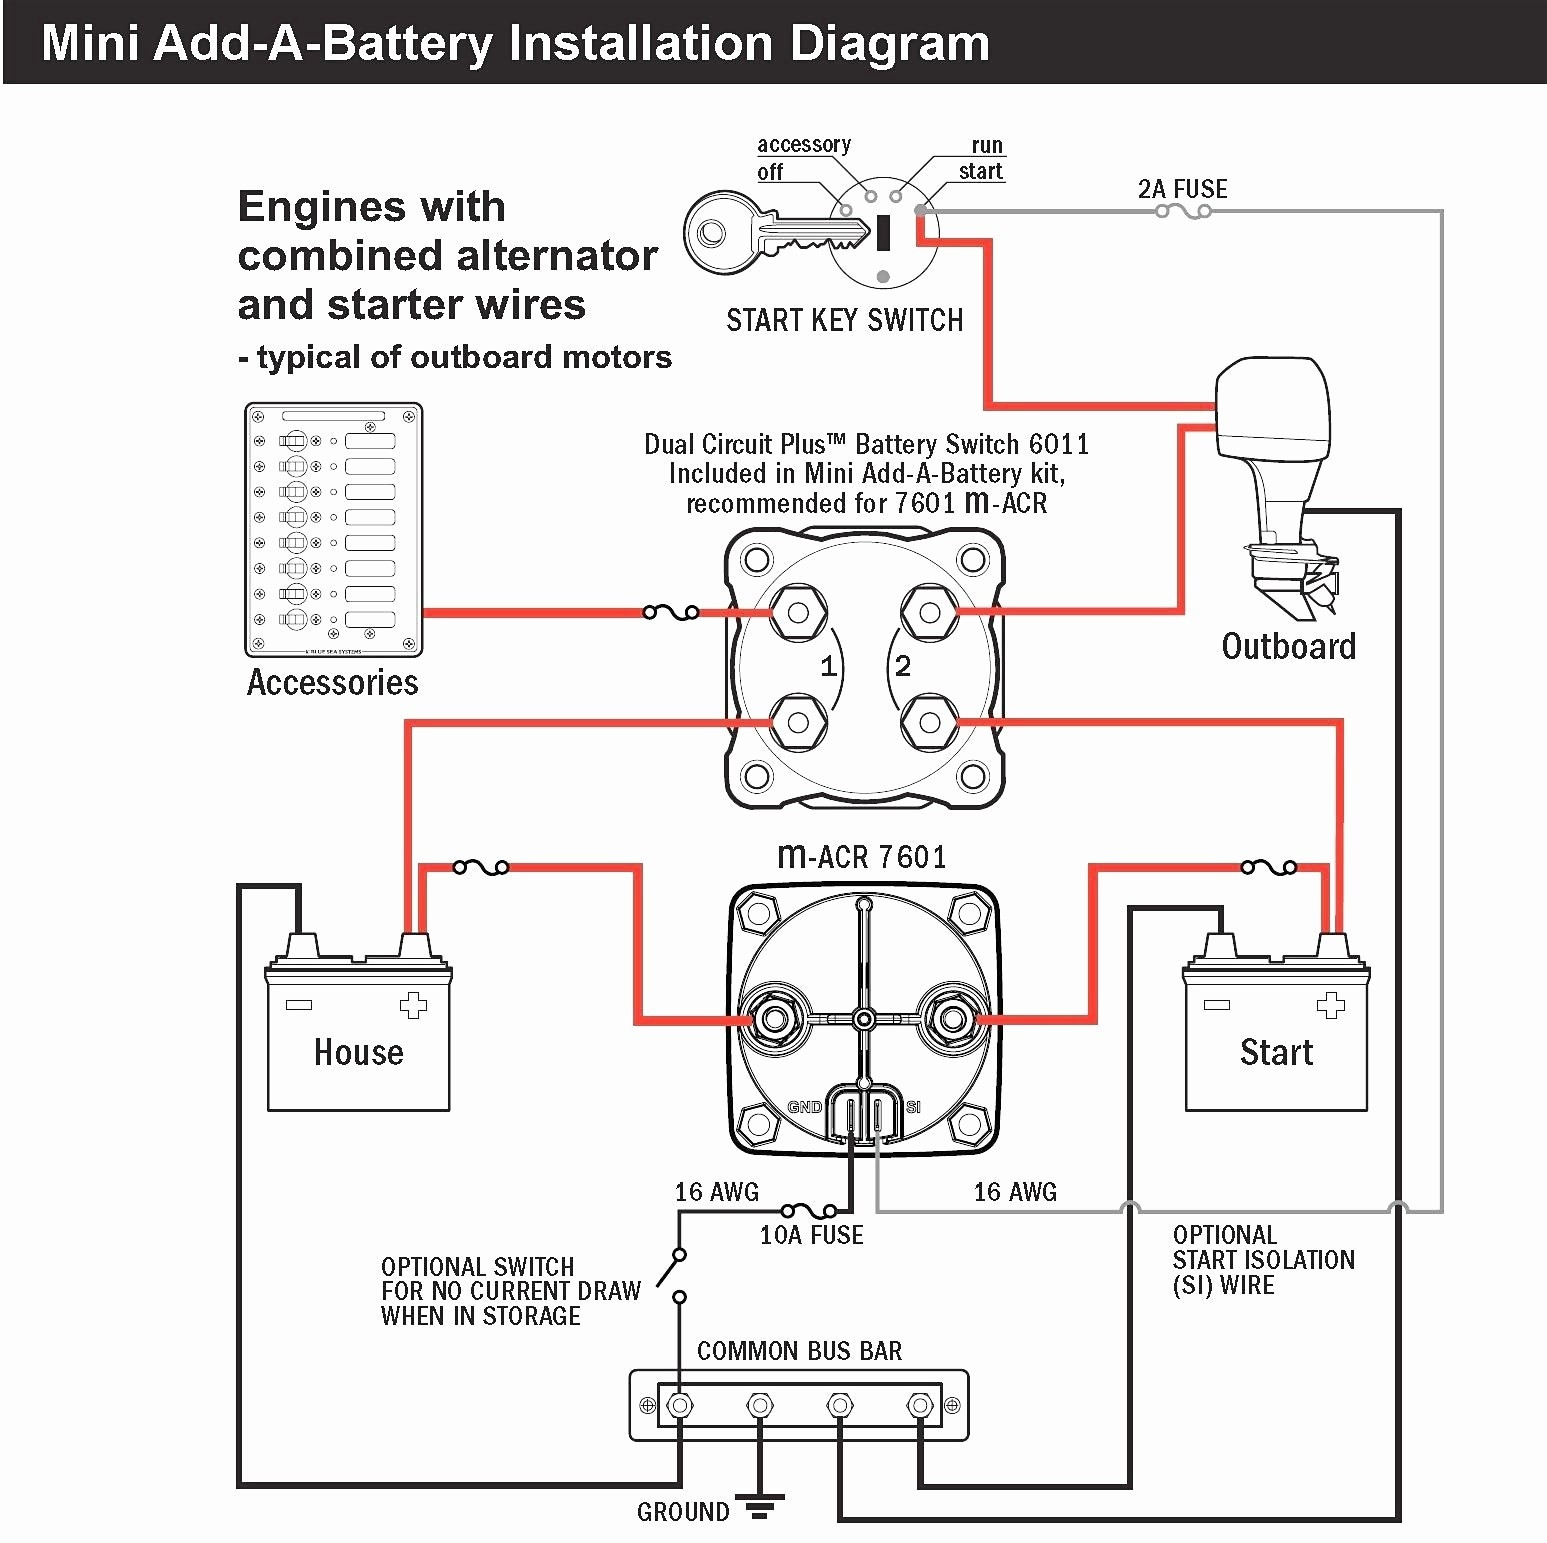 Holiday Rambler Wiring Schematics | Wiring Diagram - Holiday Rambler Wiring Diagram